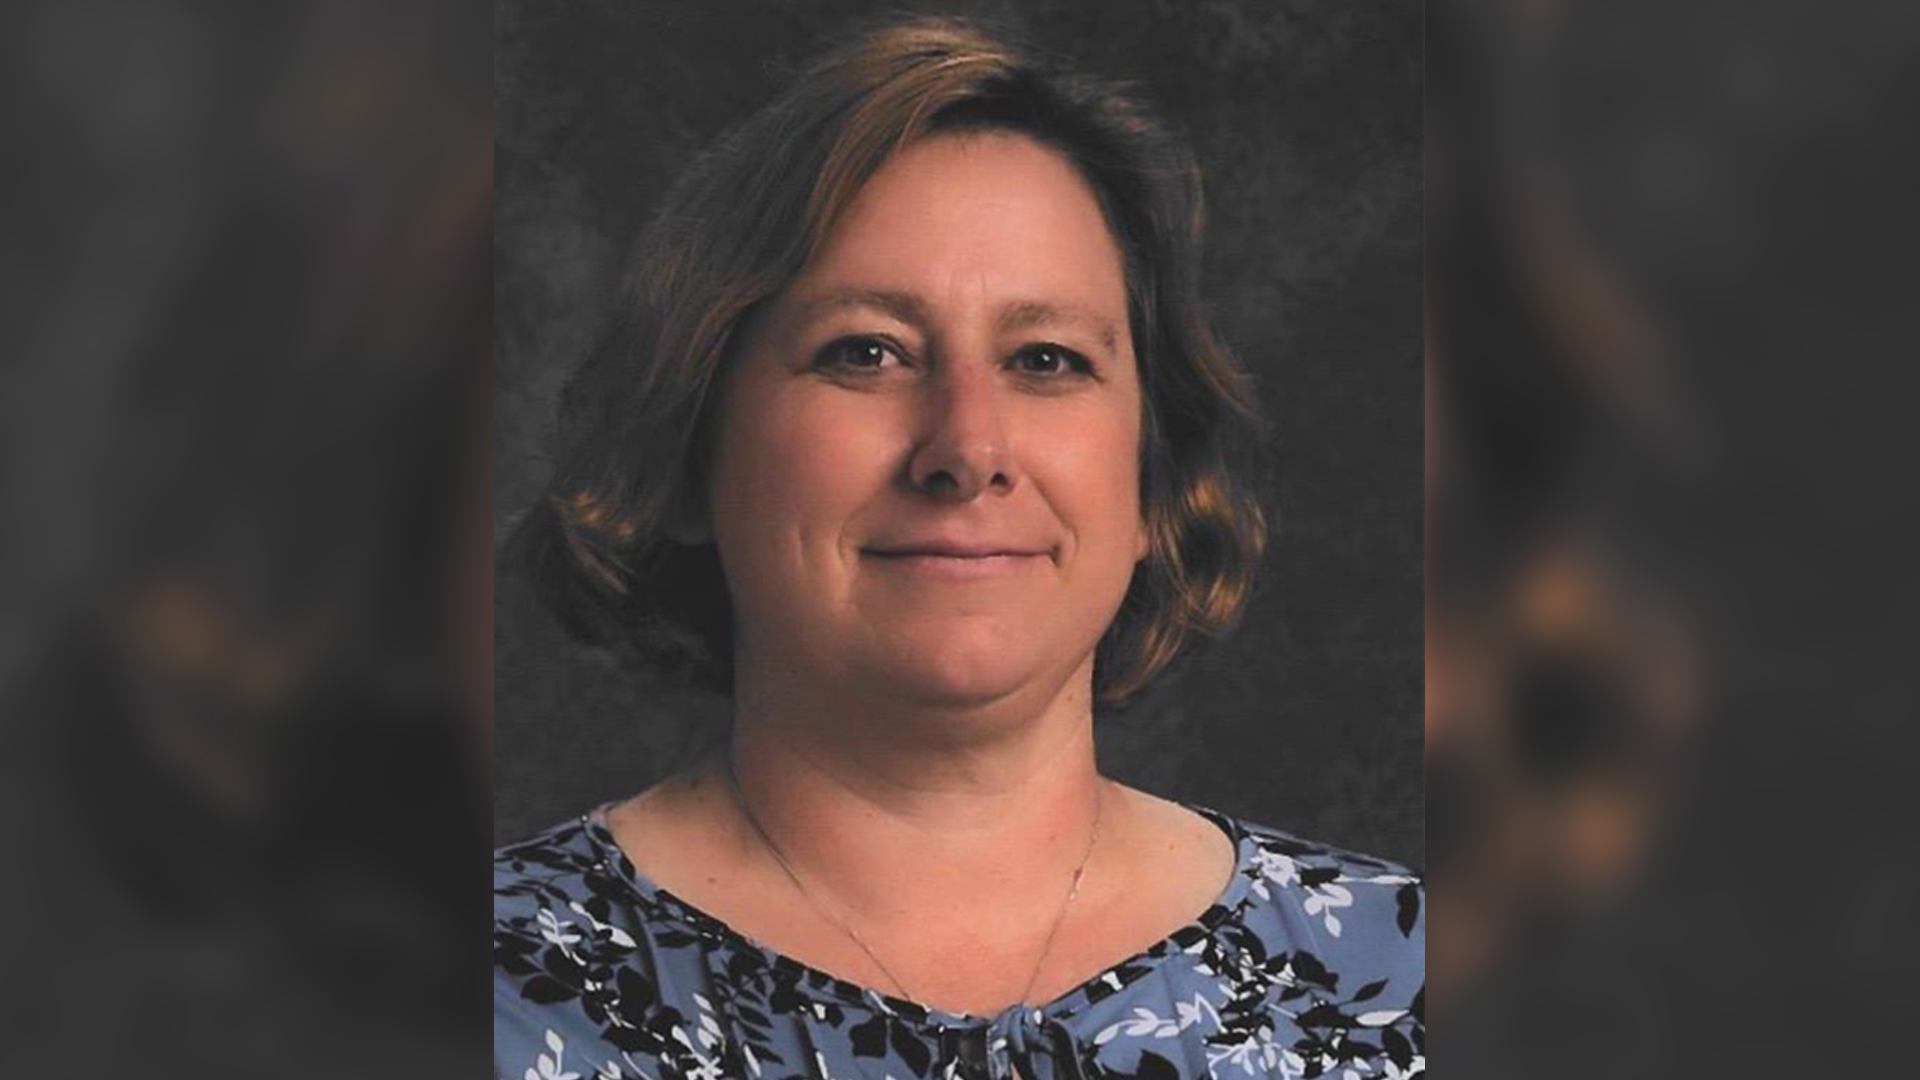 Authorities are still investigating the tragic murder of Olney high school teacher Manuela Allen.